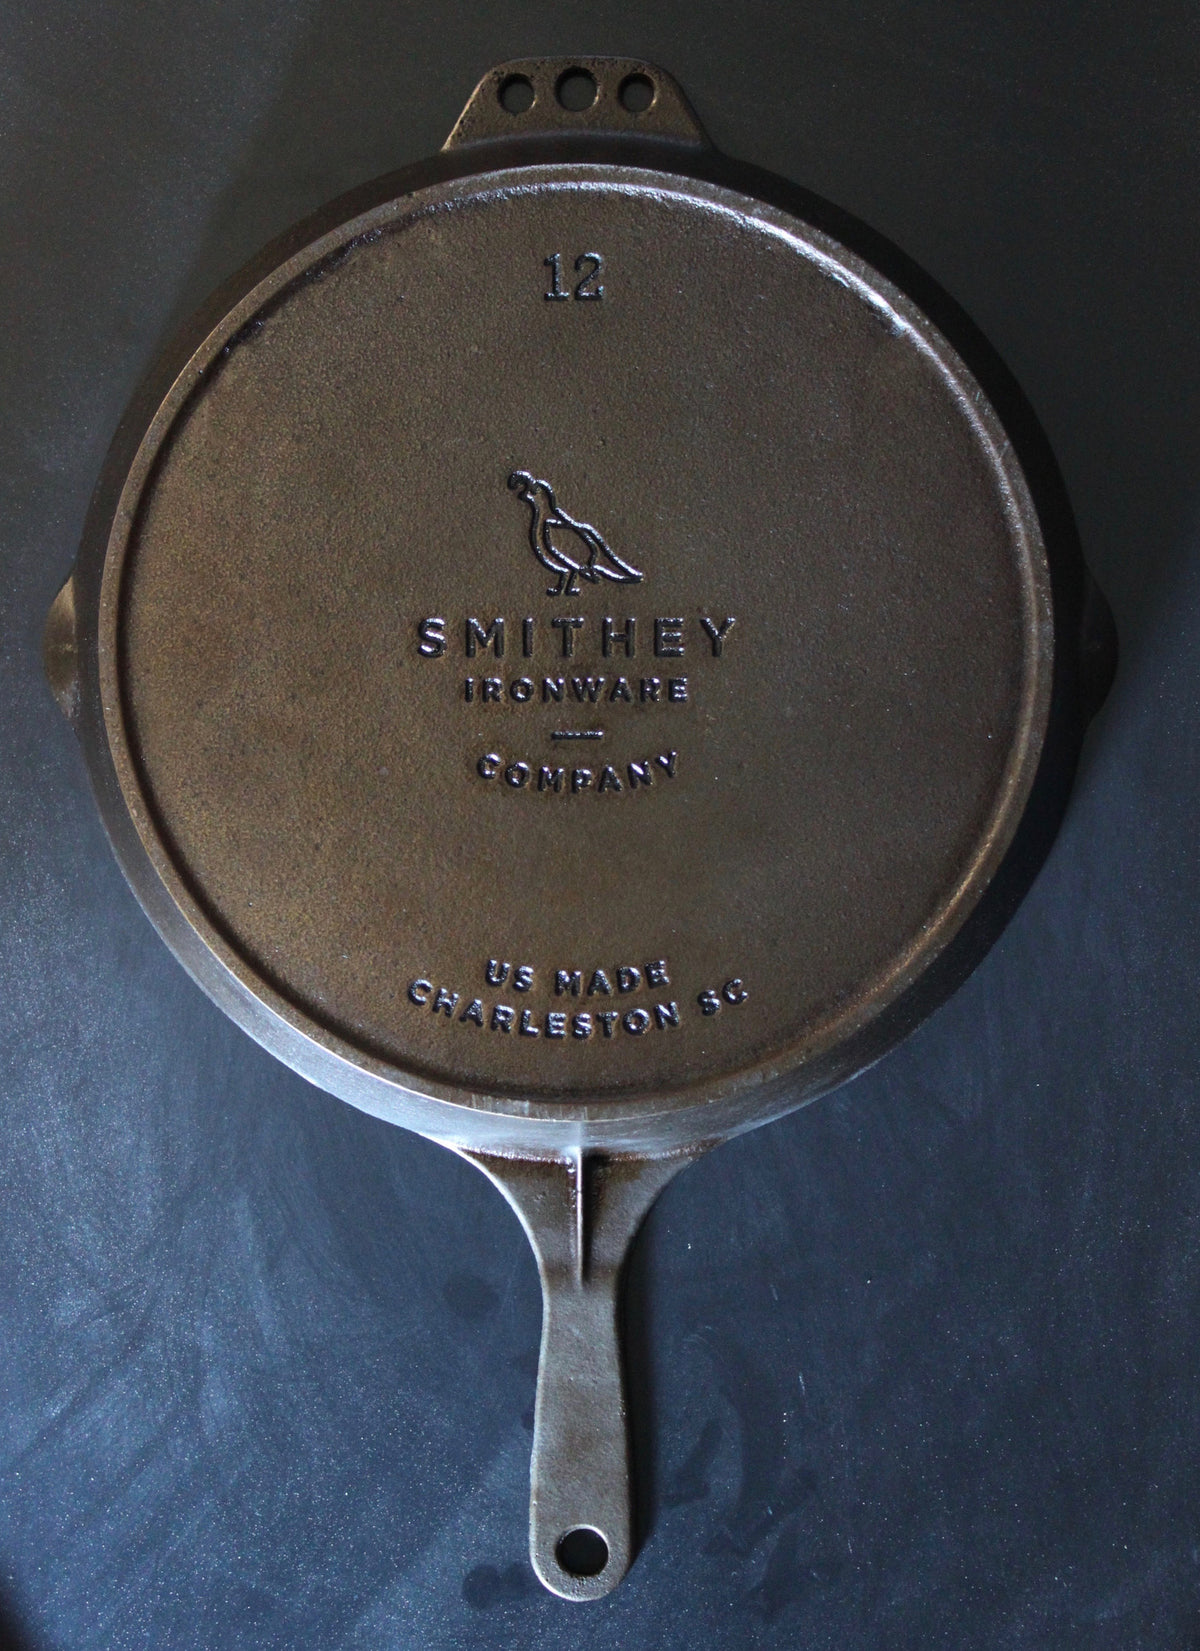 No. 12 Cast Iron Skillet